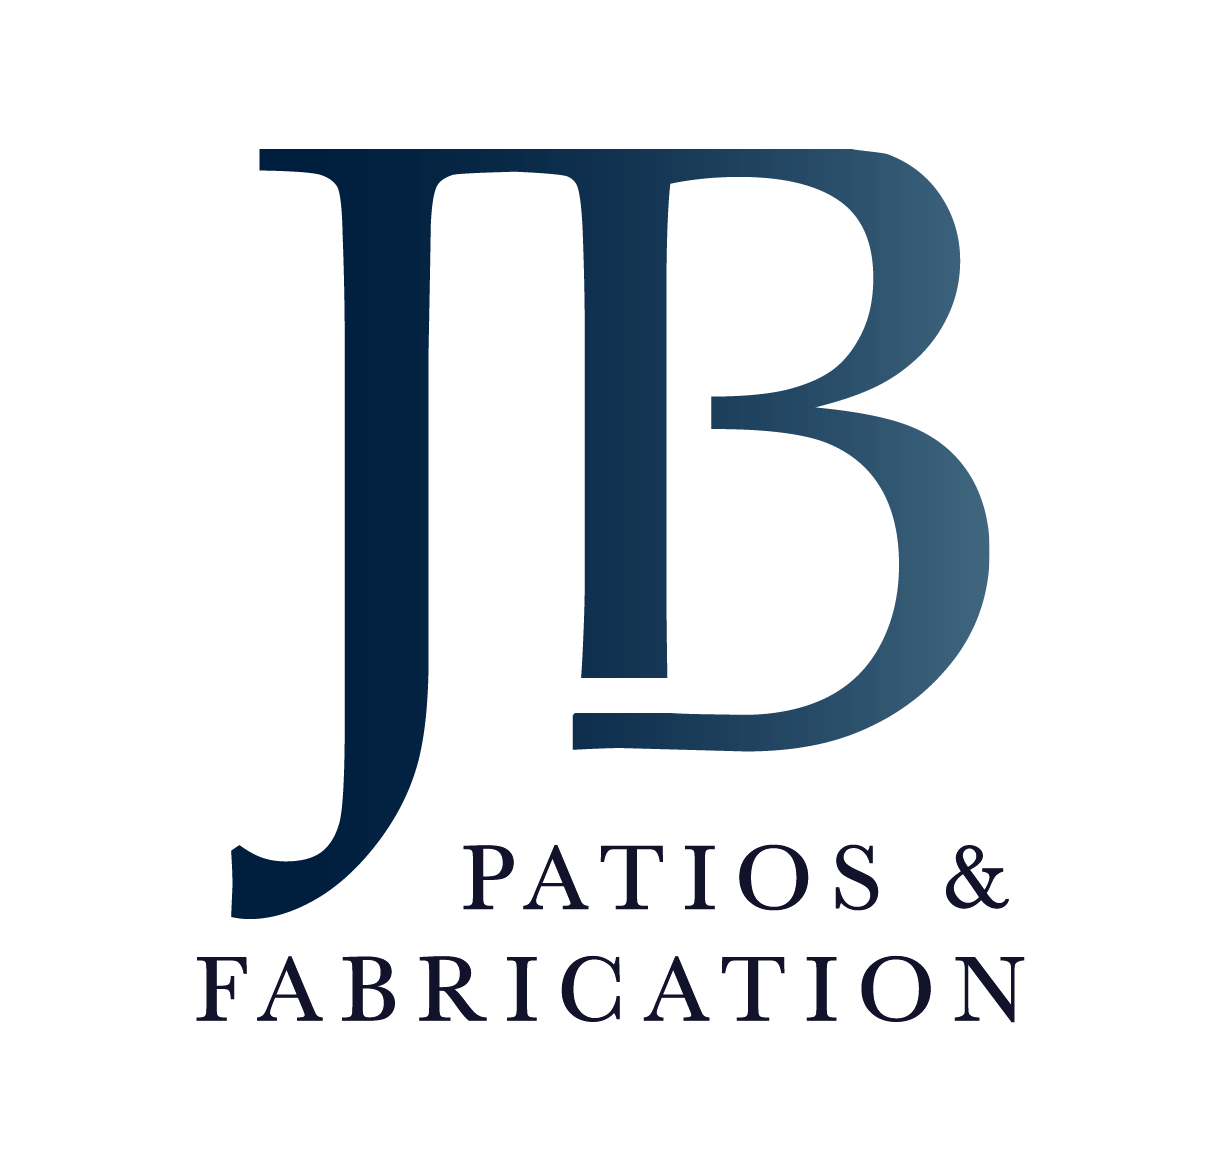 JB Patios & Fabrication | Perth Patio Builders & Installation